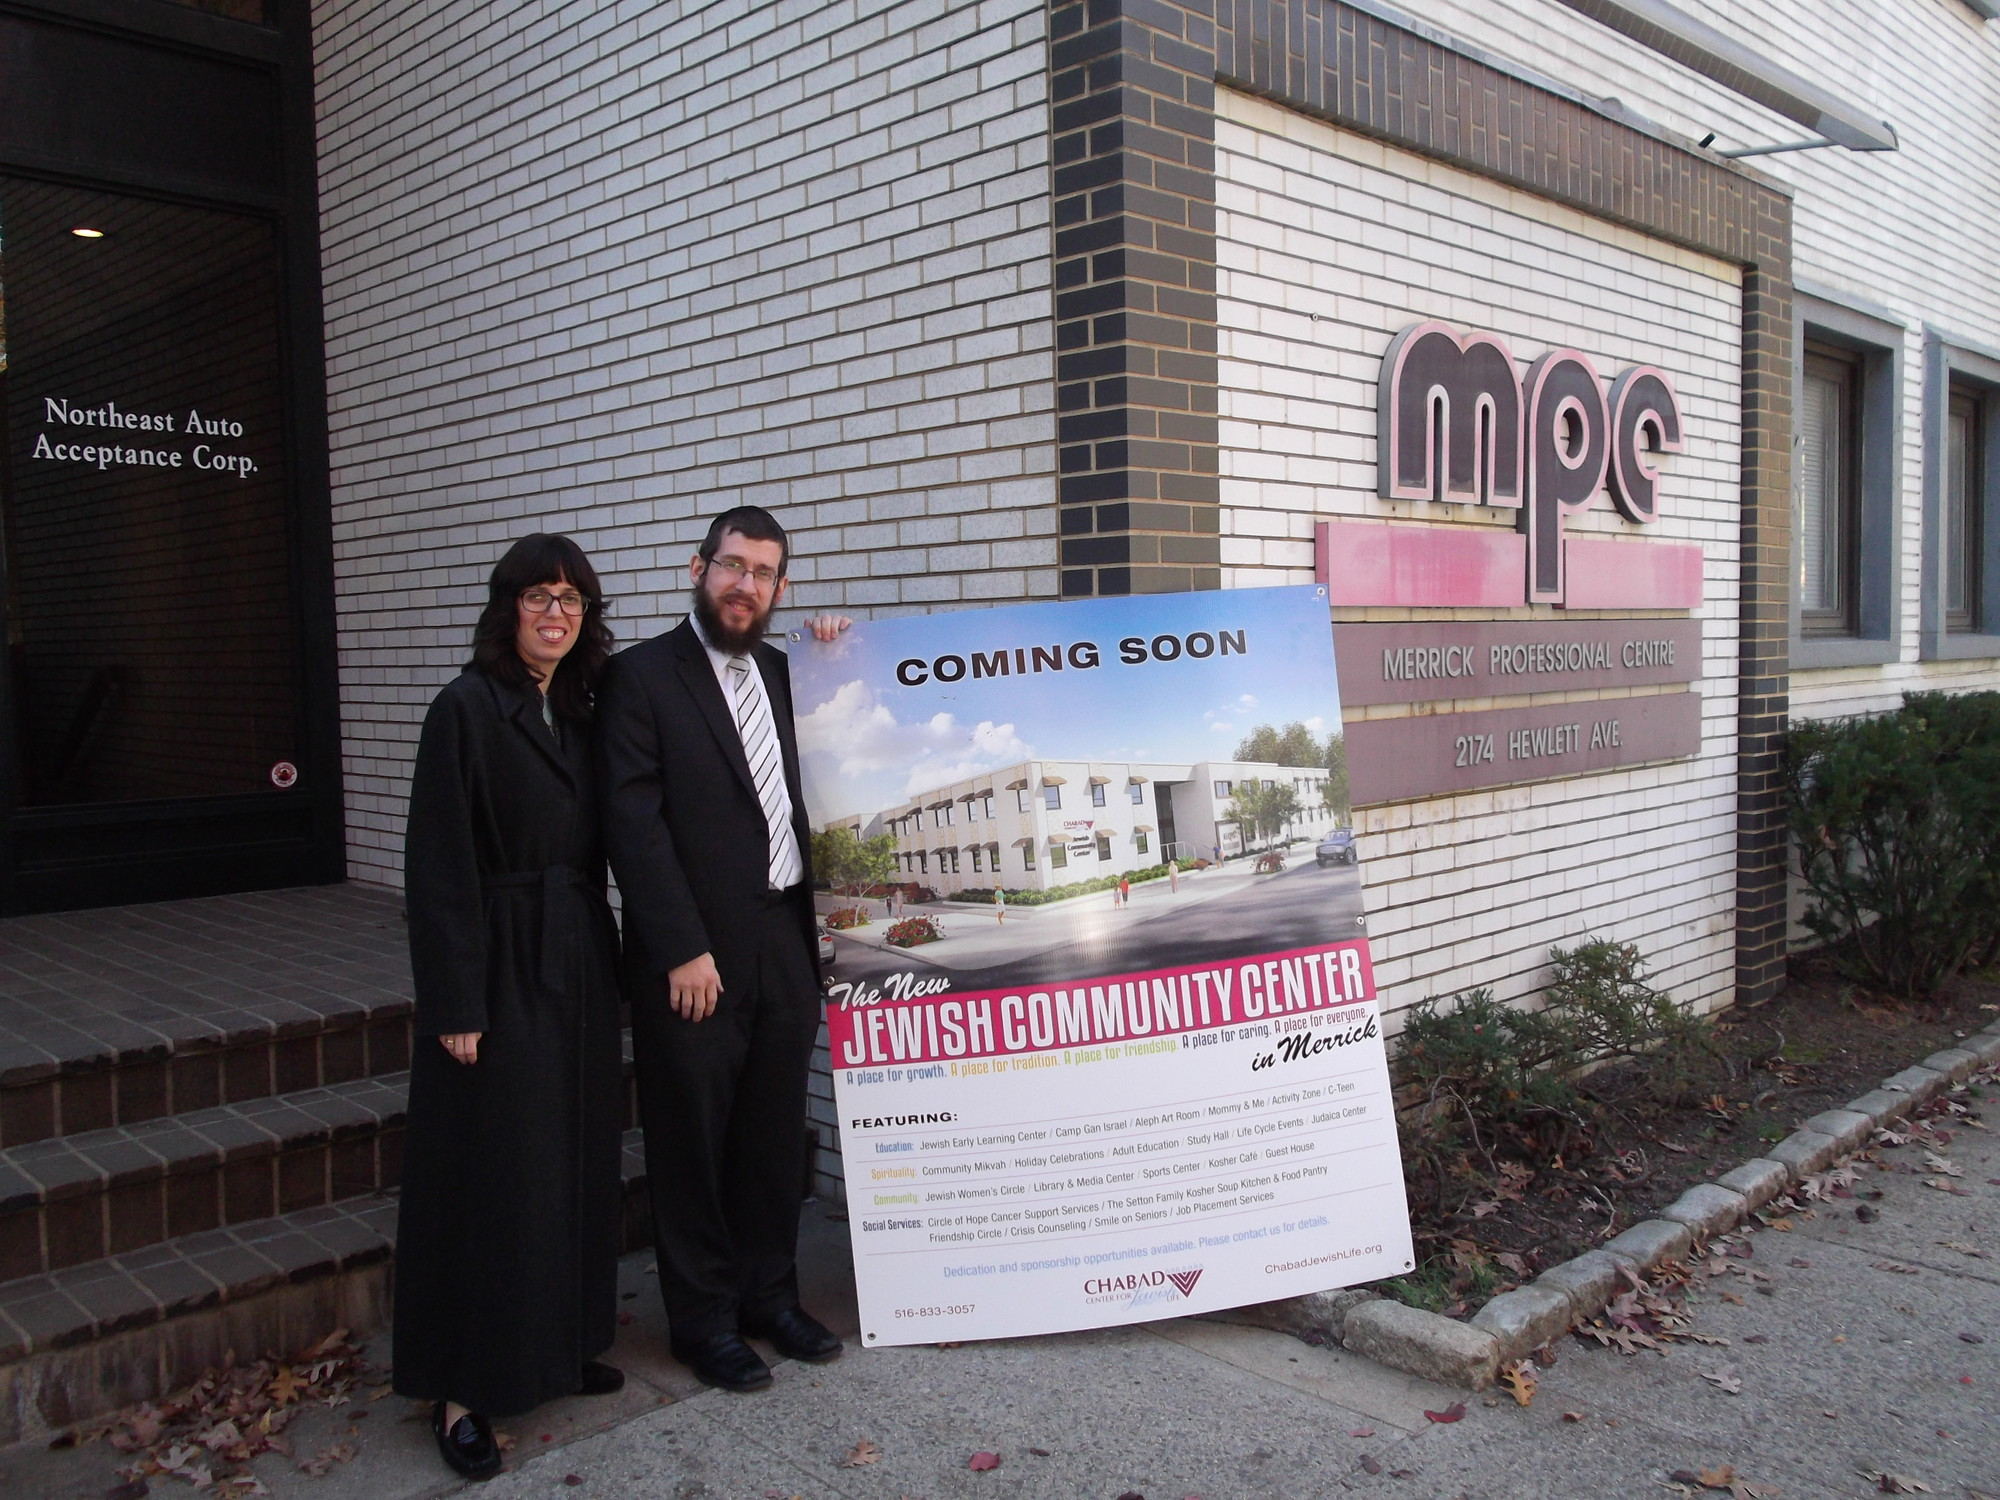 Mikvah Committee of Merrick-Bellmore